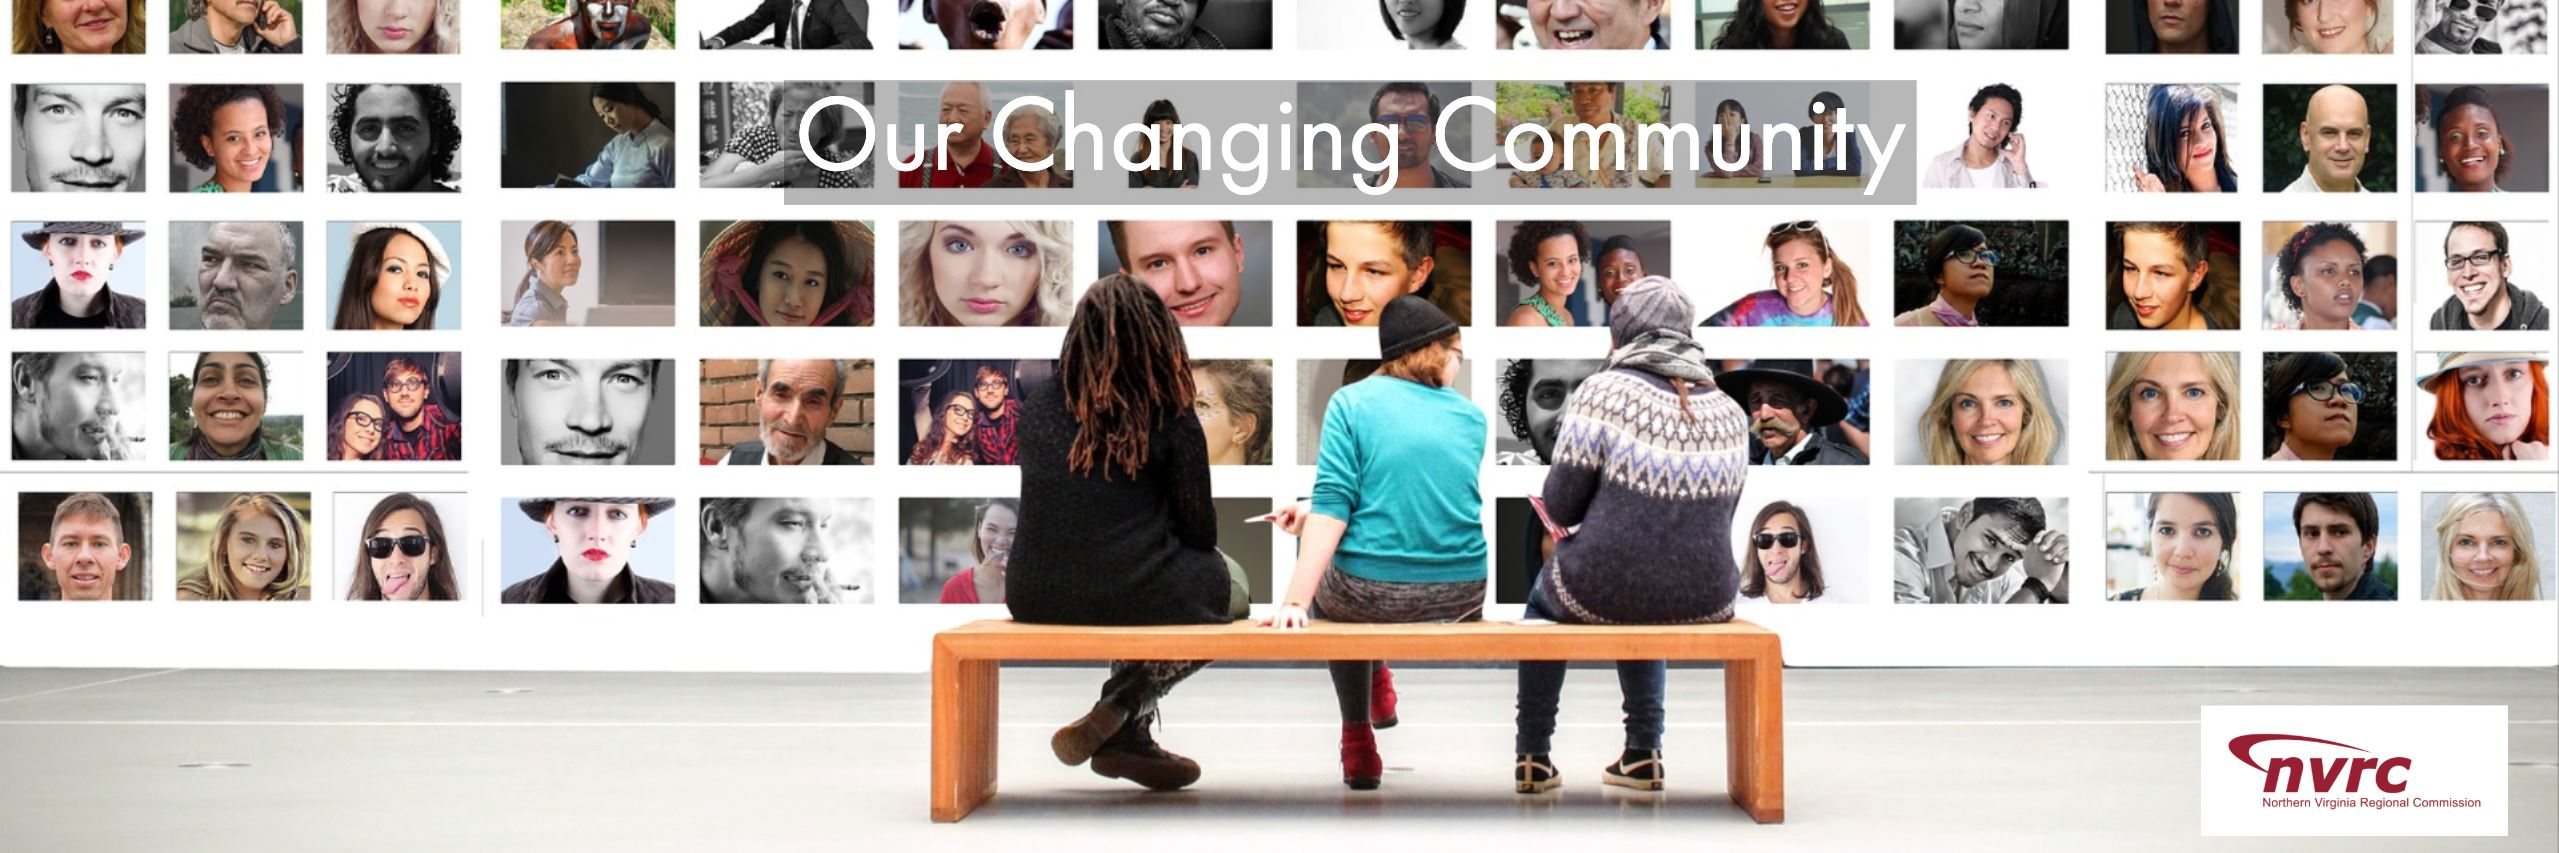 Our Changing Community